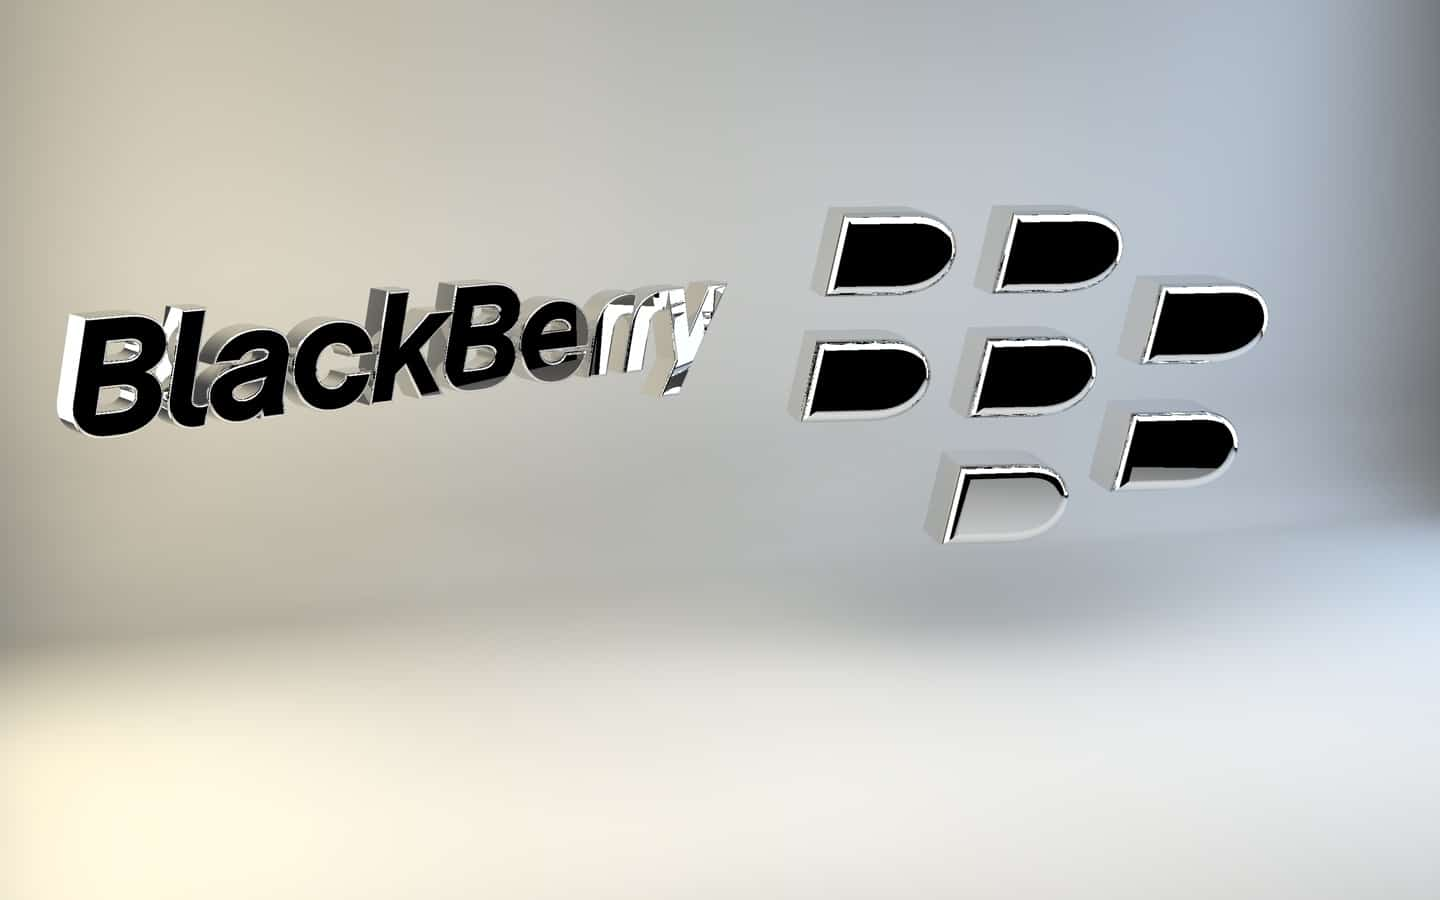 AH blackberry 1.1